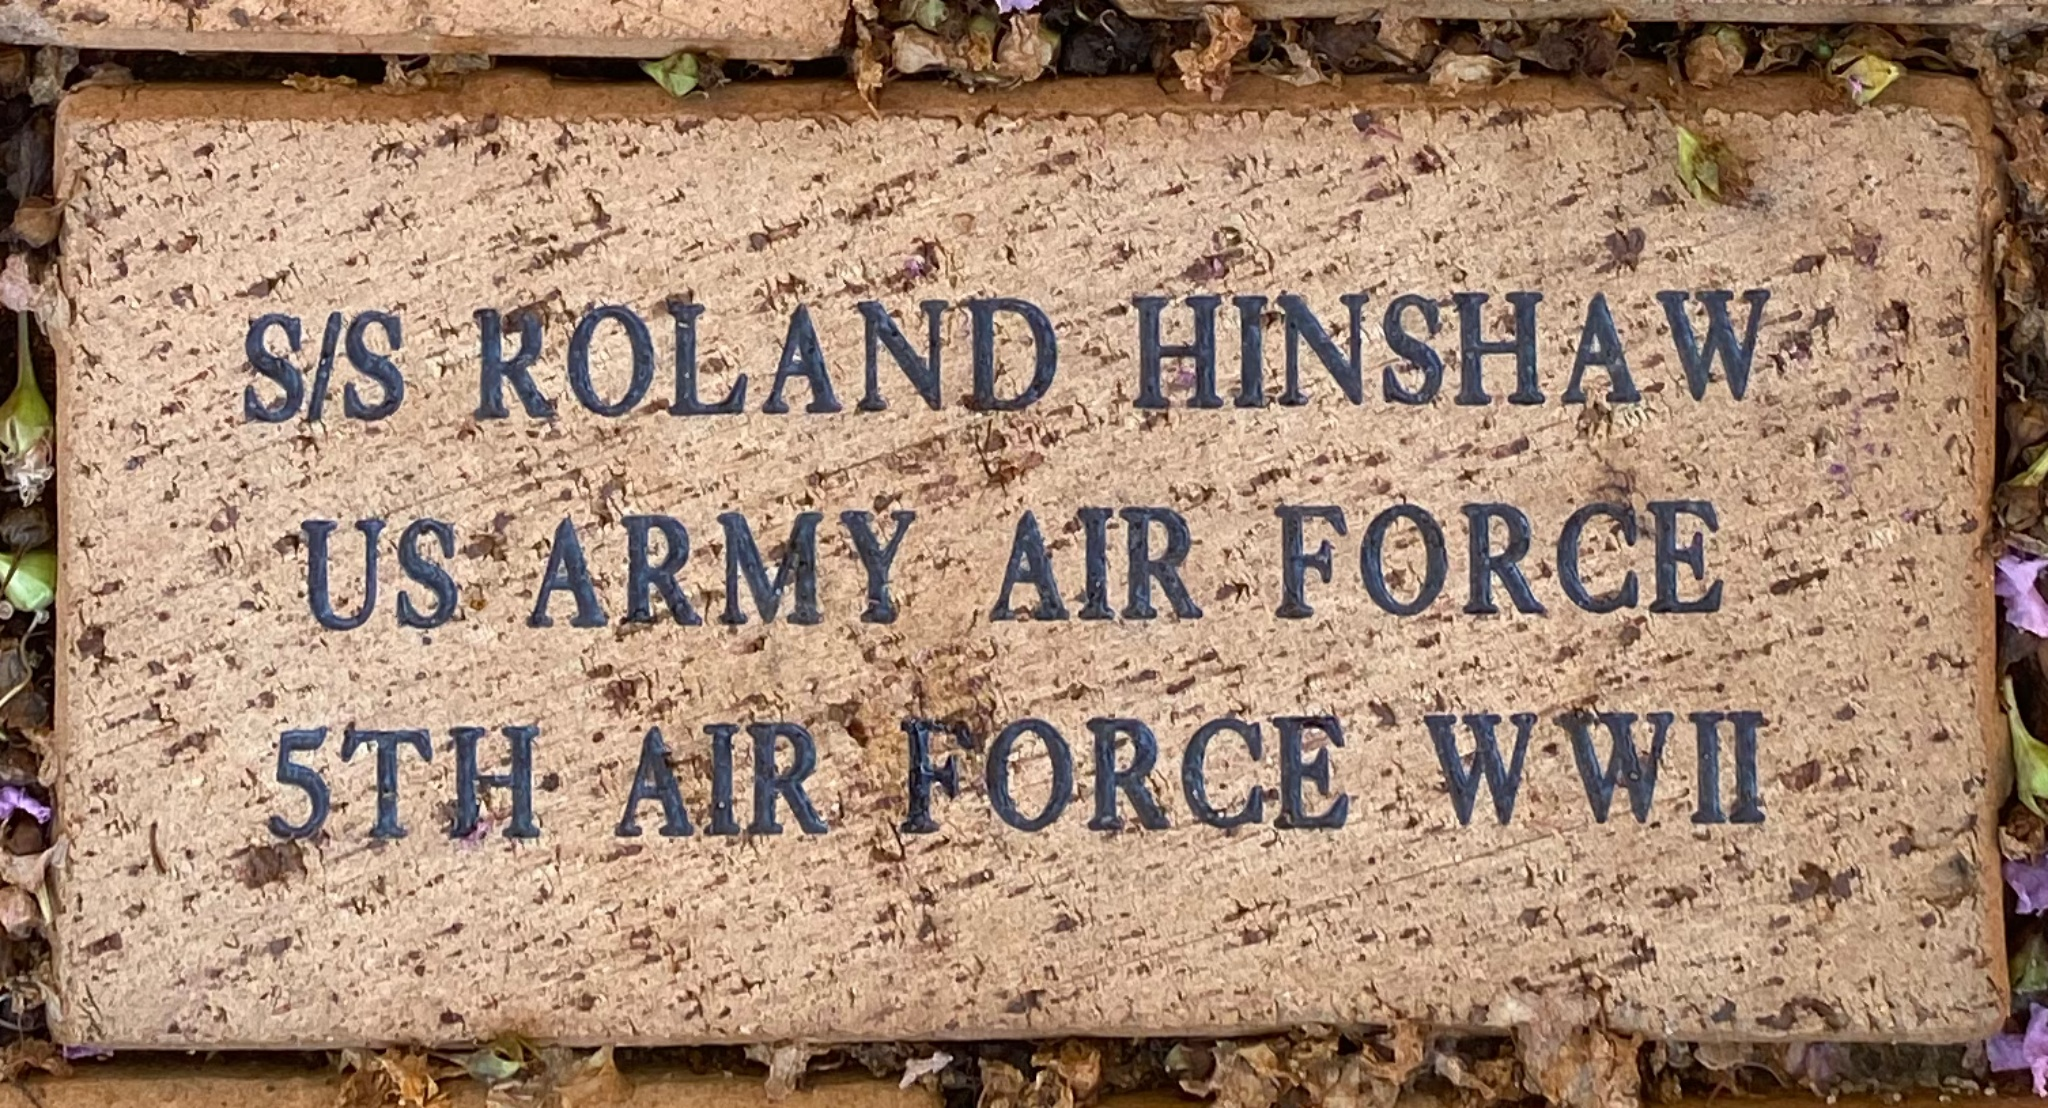 S/S ROLAND HINSHAW US ARMY AIR FORCE 5TH AIR FORCE WWII